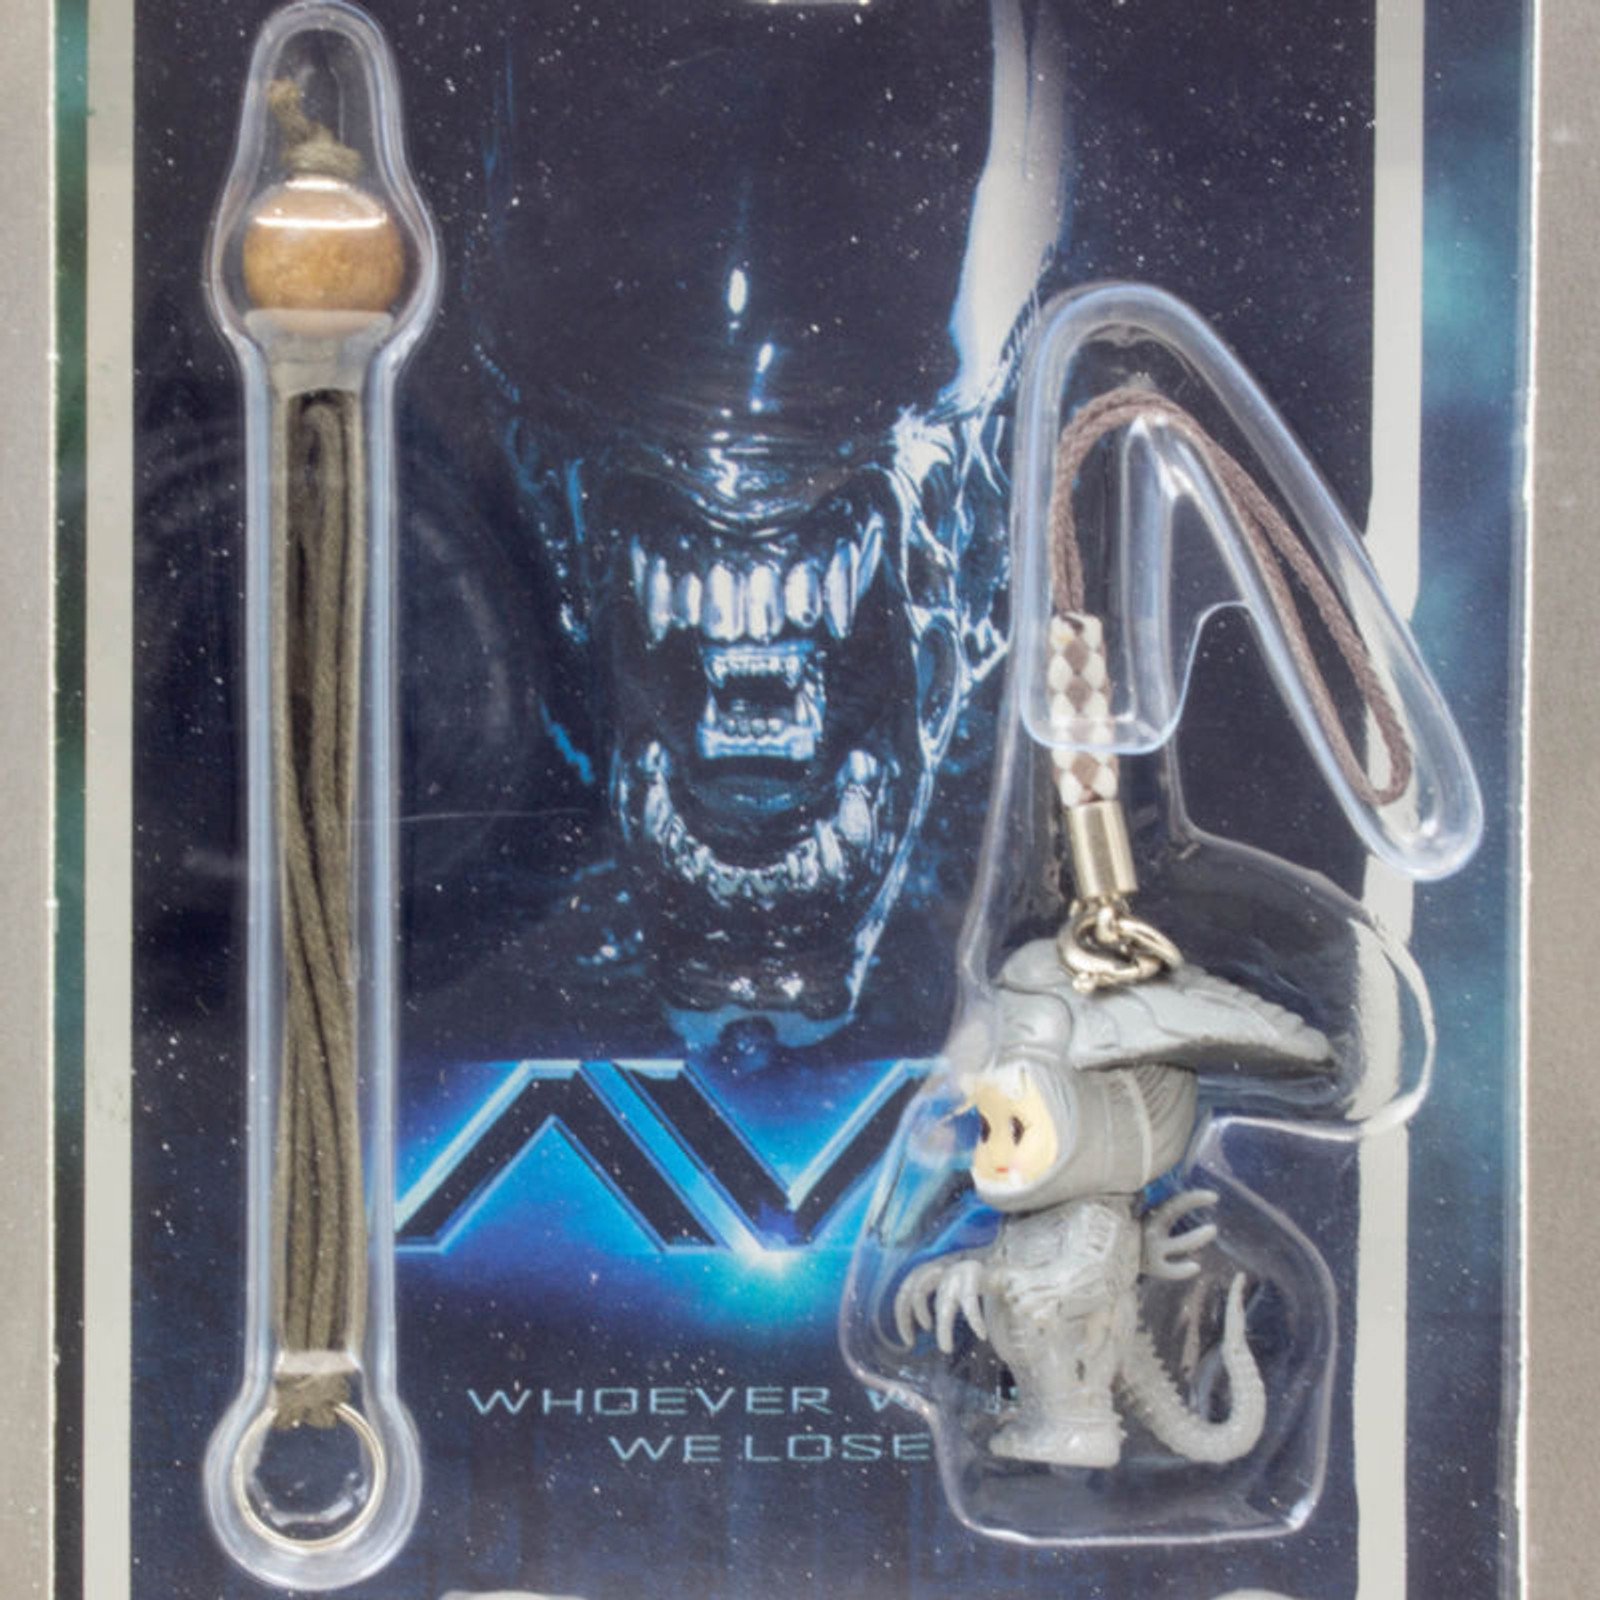 RARE! Alien vs. Predator Rose O'neill Kewpie Kewsion Strap Set JAPAN ANIME